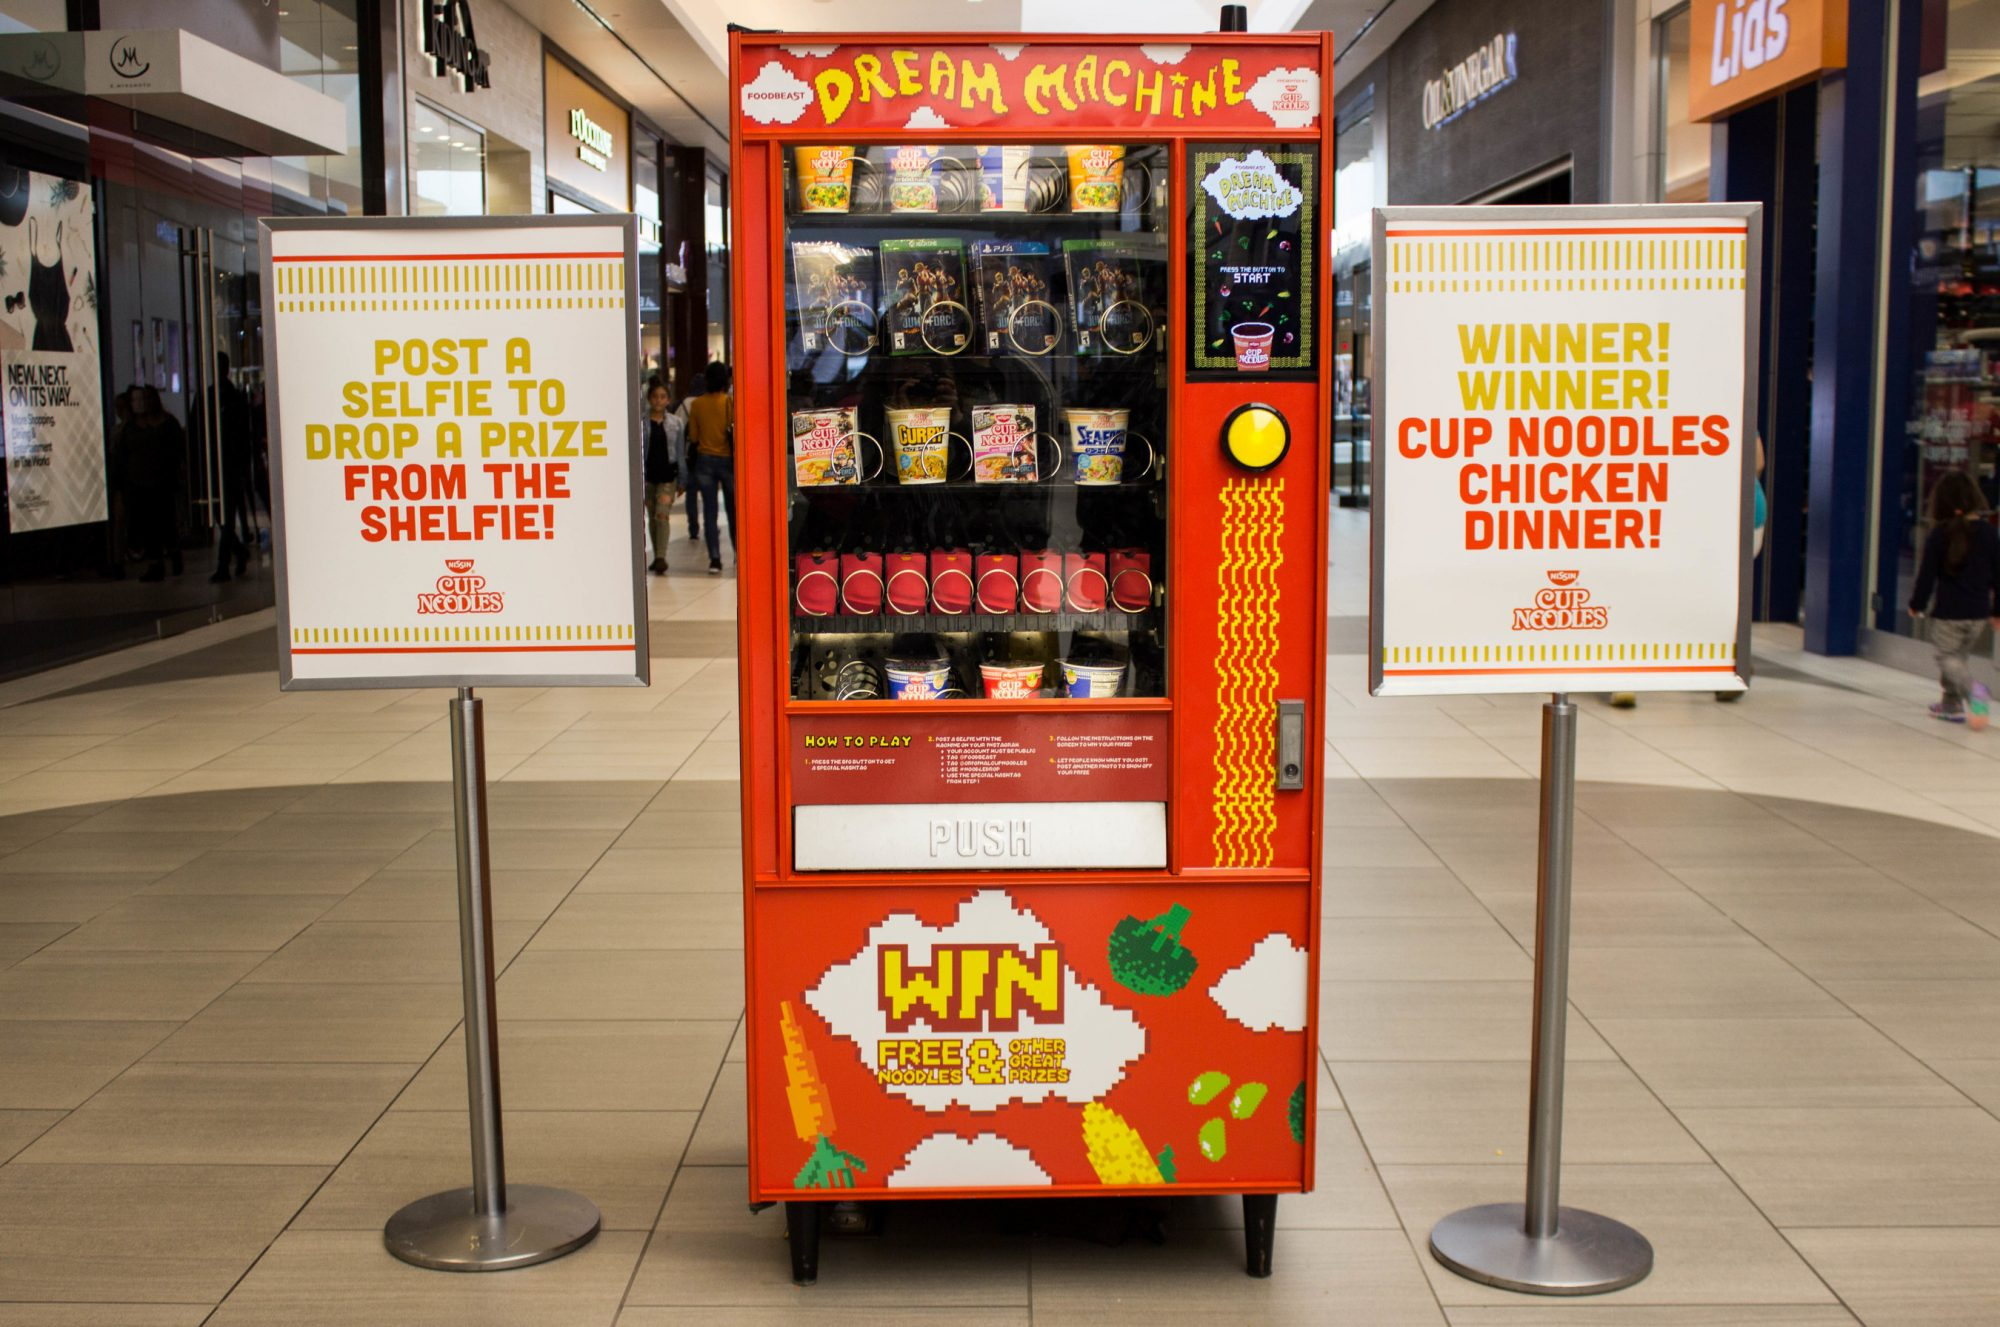 You Can Buy Cup Noodles From a Vending Machine, Using Instagram as Currency